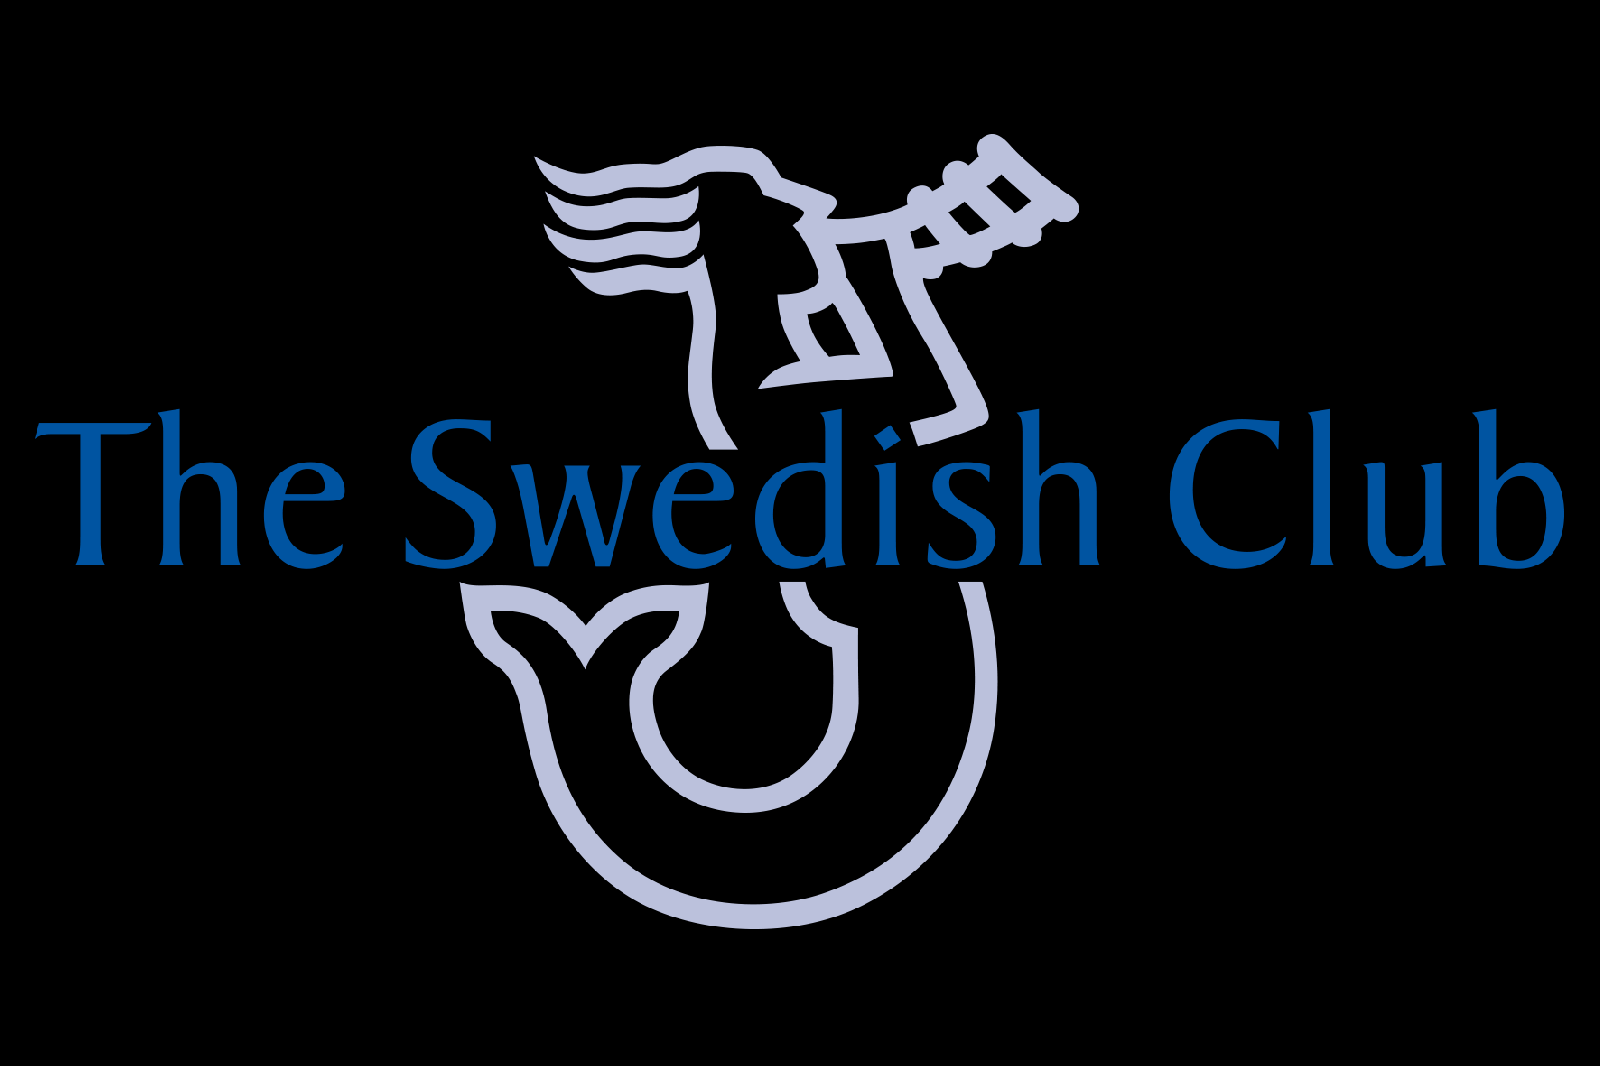 A STEADY COURSE FOR THE SWEDISH CLUB